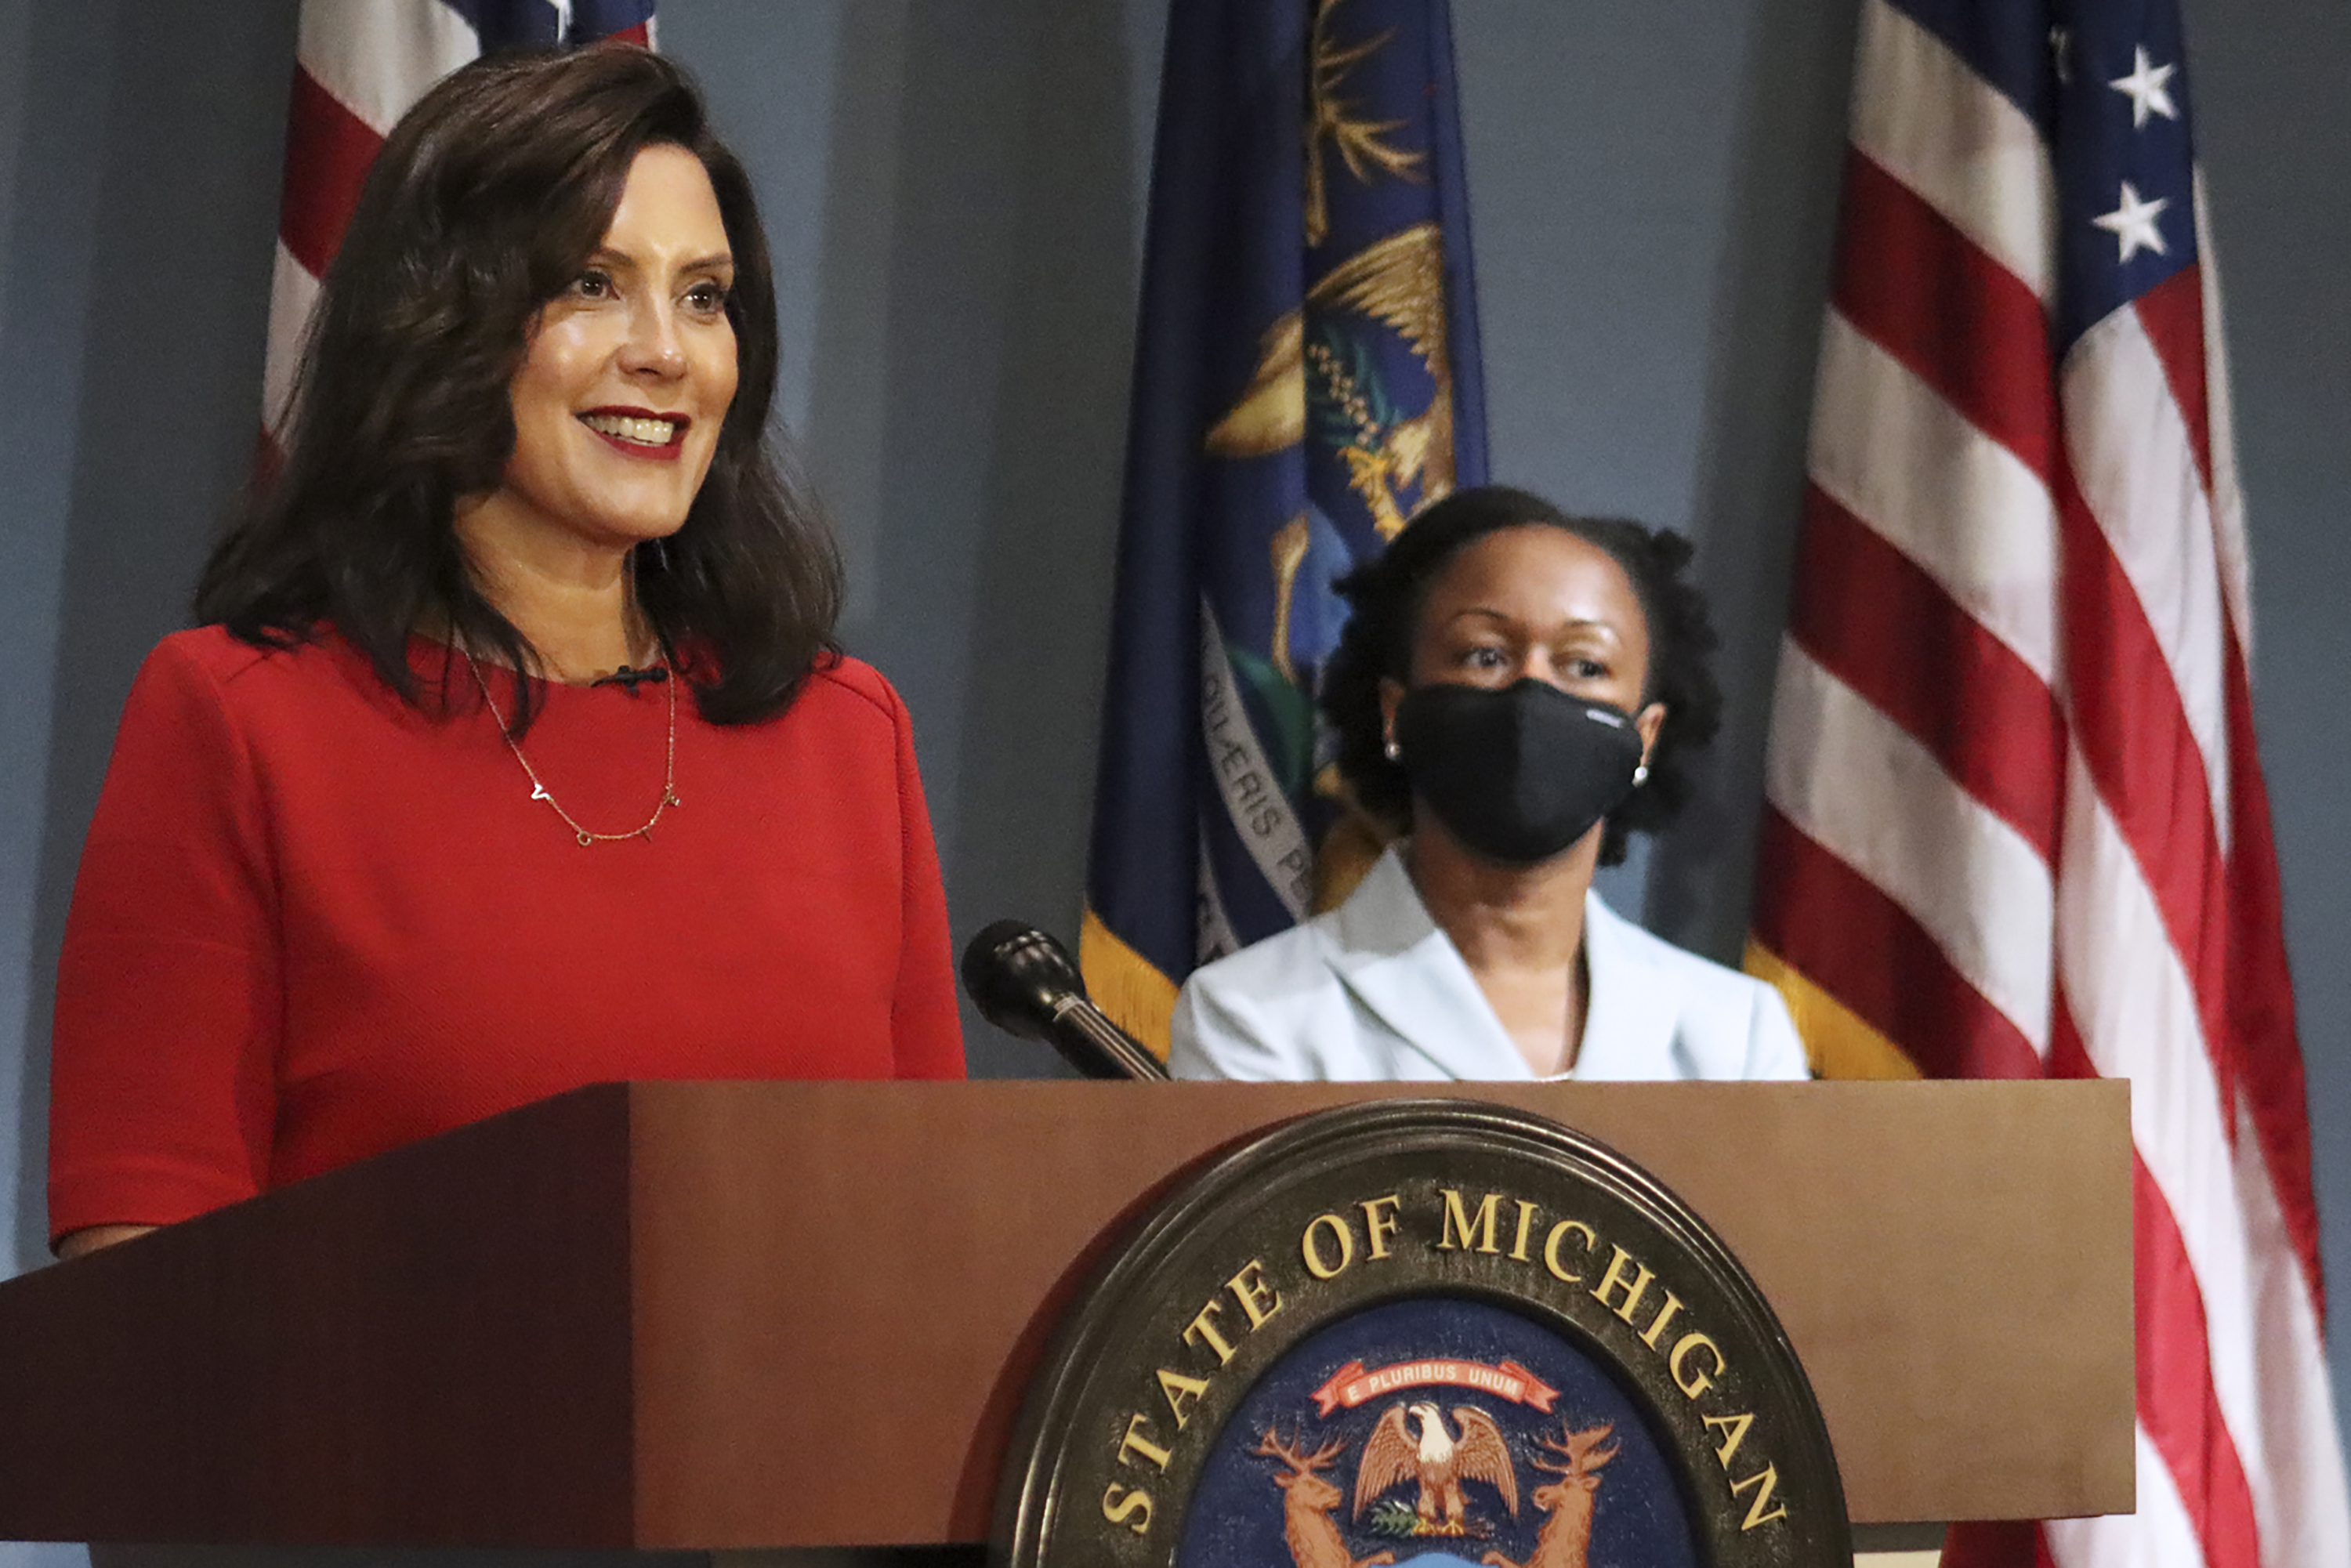 In this photo Sept. 16, 2020 file photo, provided by the Michigan Office of the Governor, Gov. Whitmer addresses the state during a speech in Lansing, Mich. According to a criminal complaint unsealed Thursday, Oct. 8 six people plotted to try to kidnap Whitmer at her vacation home.